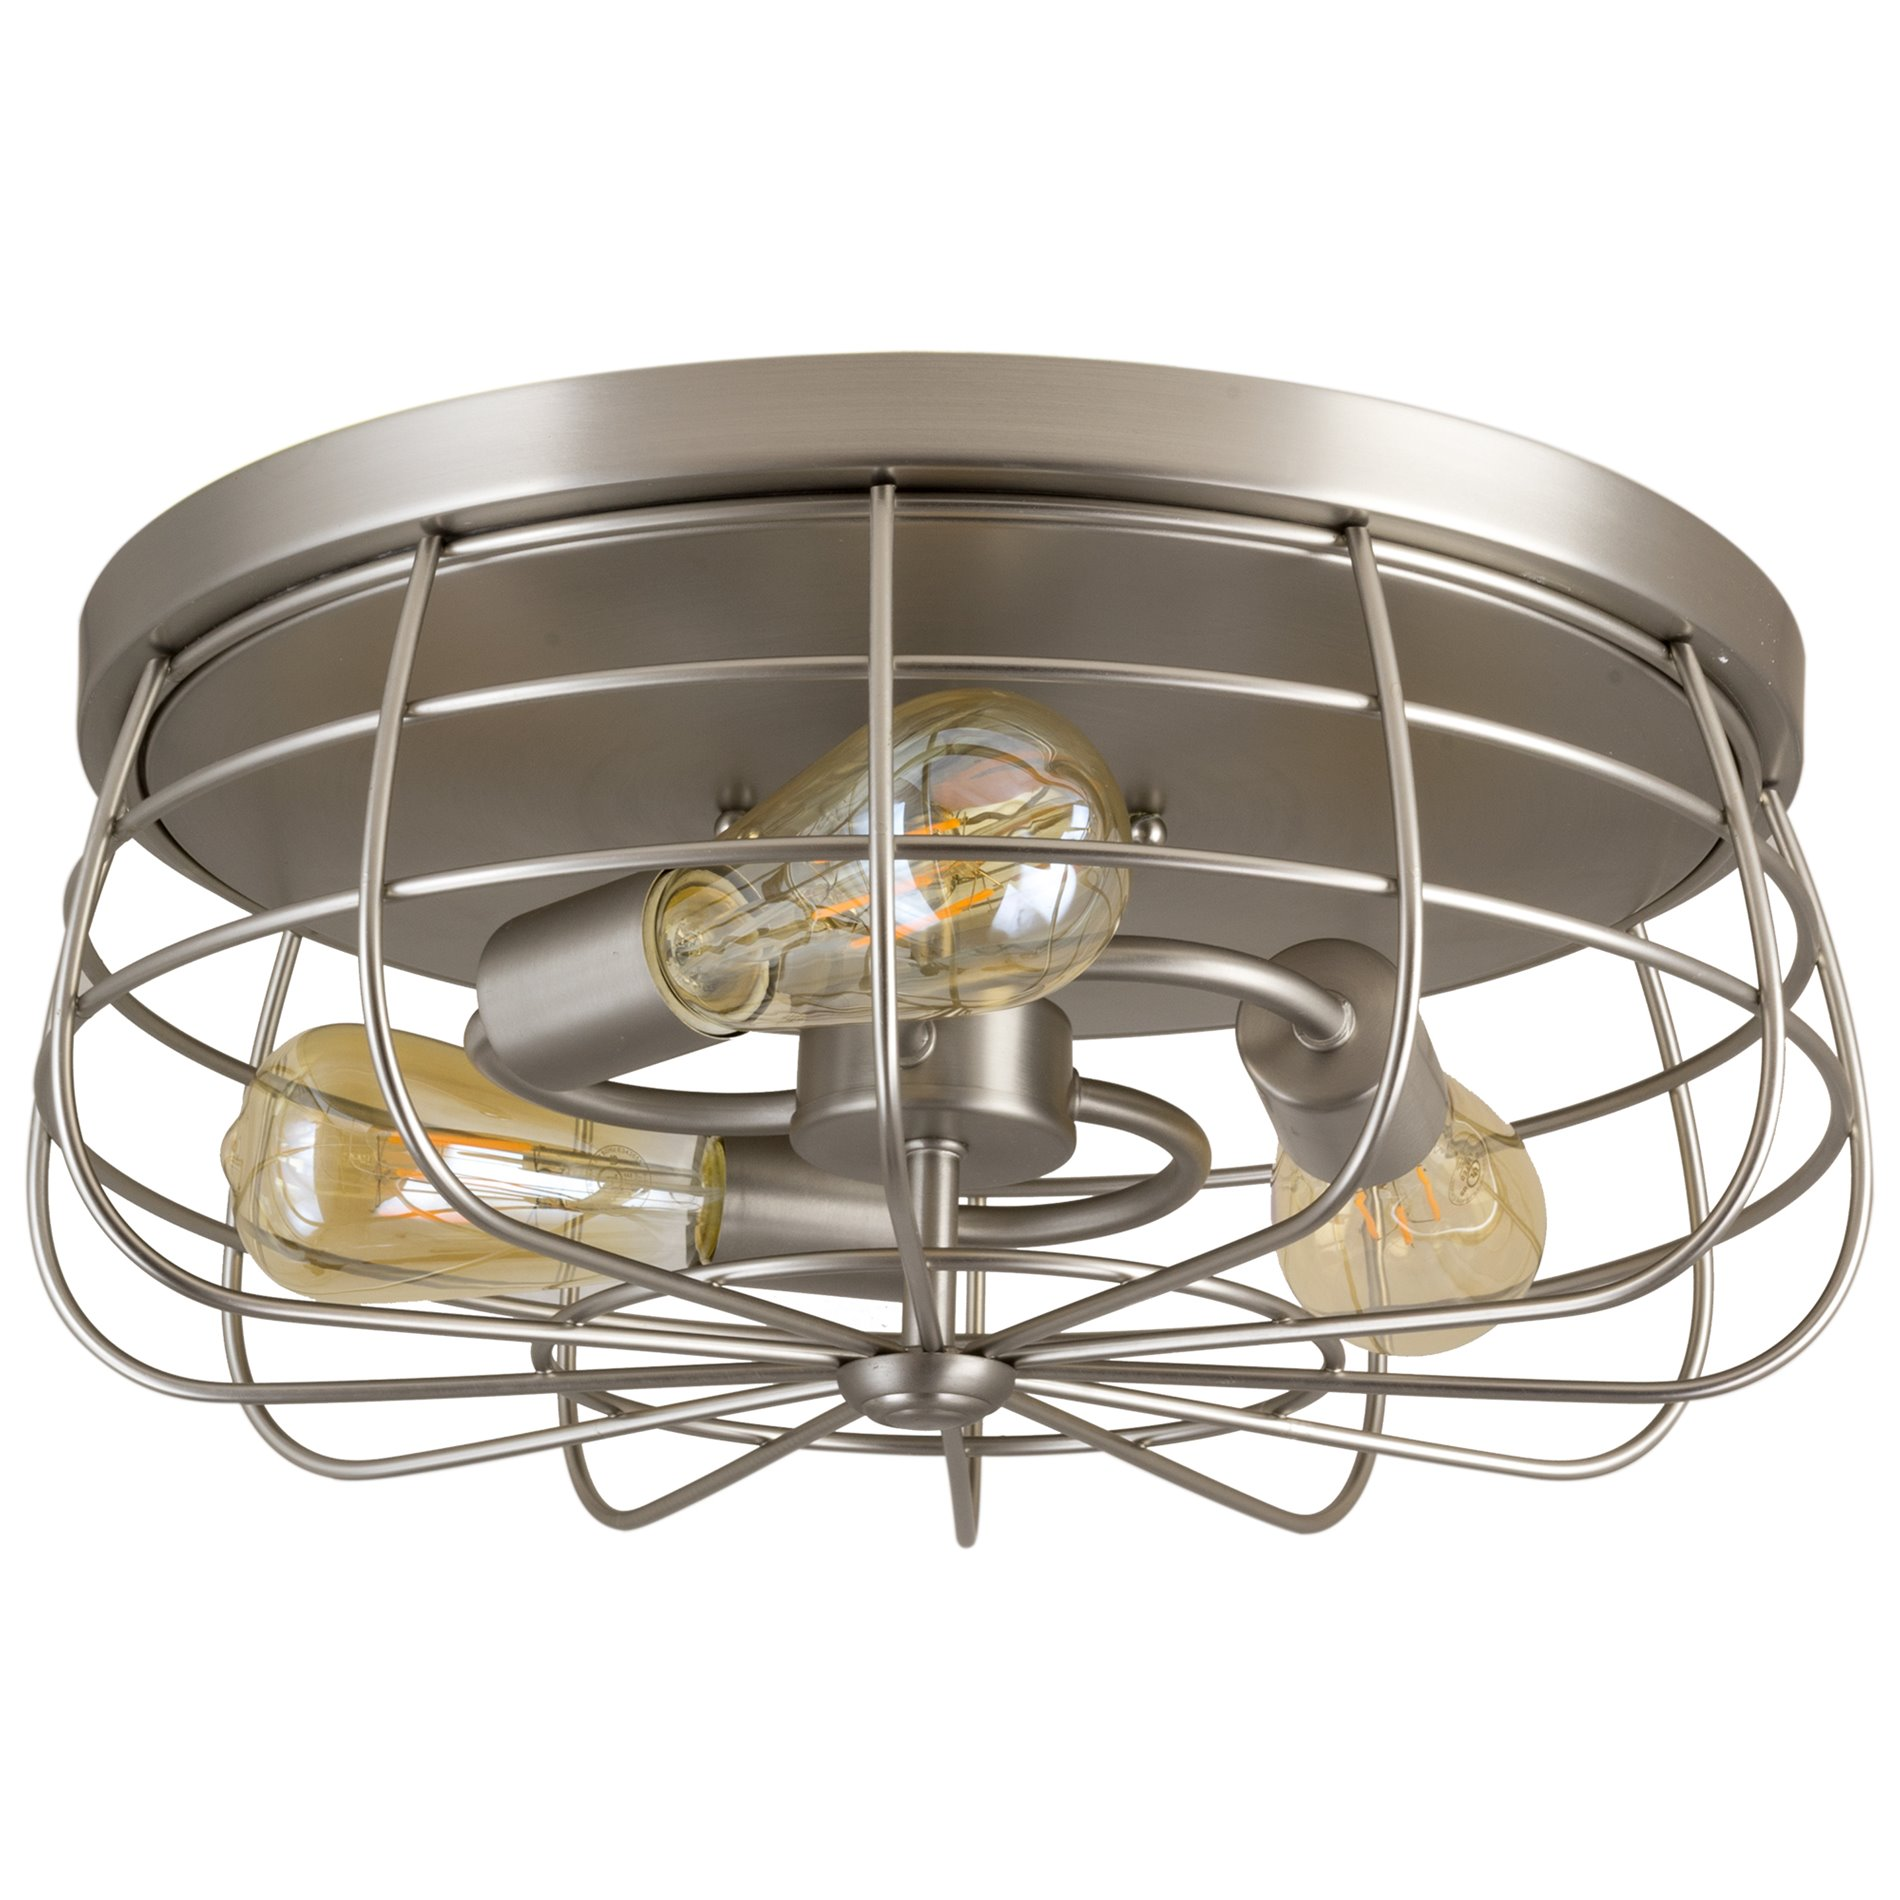 "Revel Gage 15"" Industrial 3-Light Cage Flush Mount Ceiling Light, Brushed Nickel Finish"